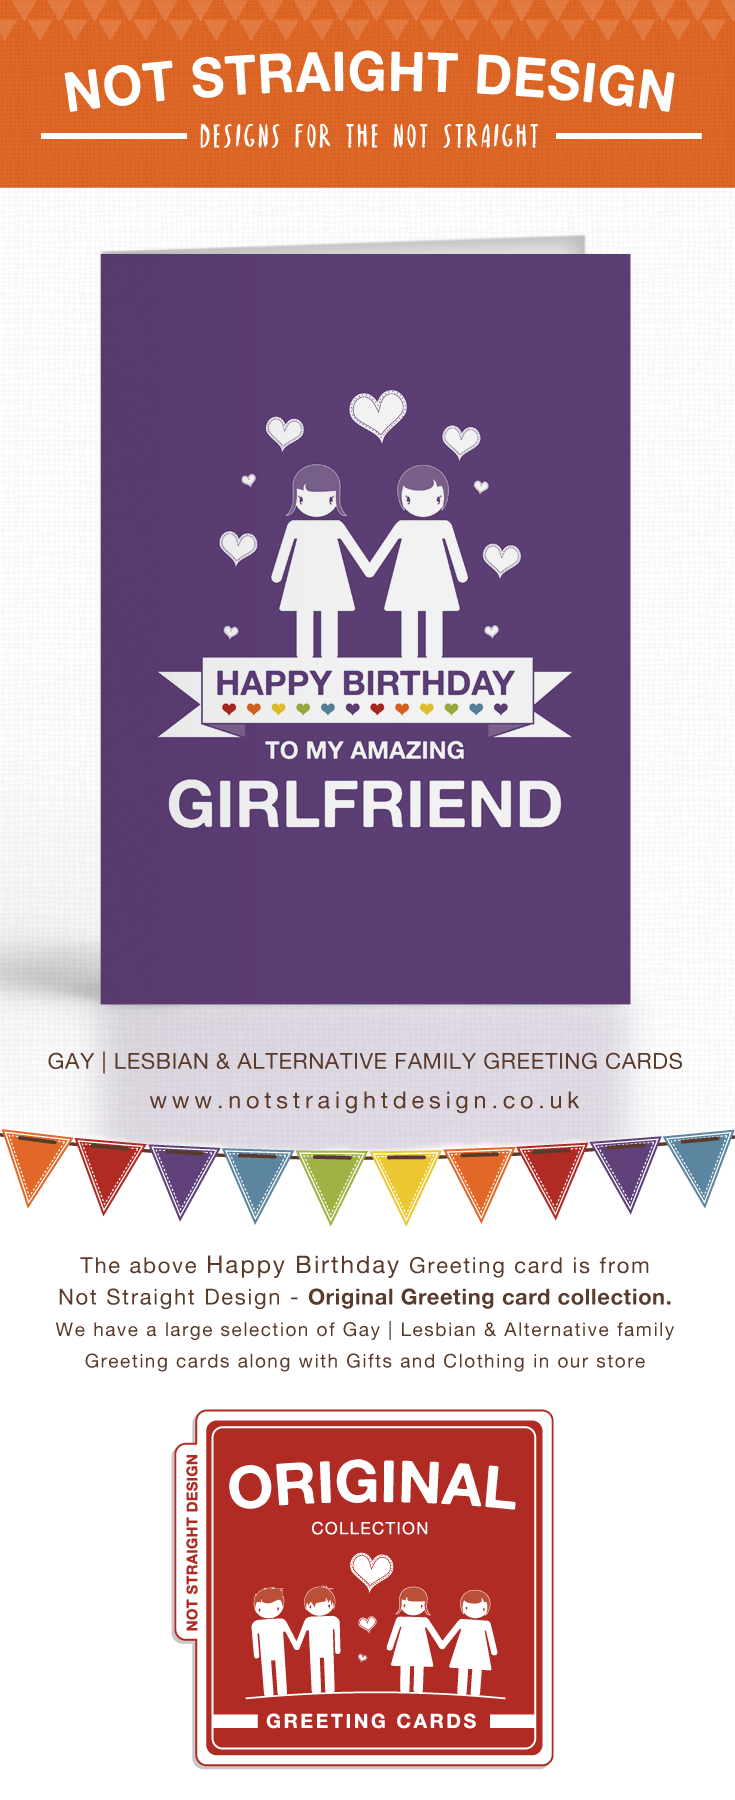 Happy Birthday To My Amazing Girlfriend Greeting Card Available Buy At Our Zazzle Store Not Straight Design